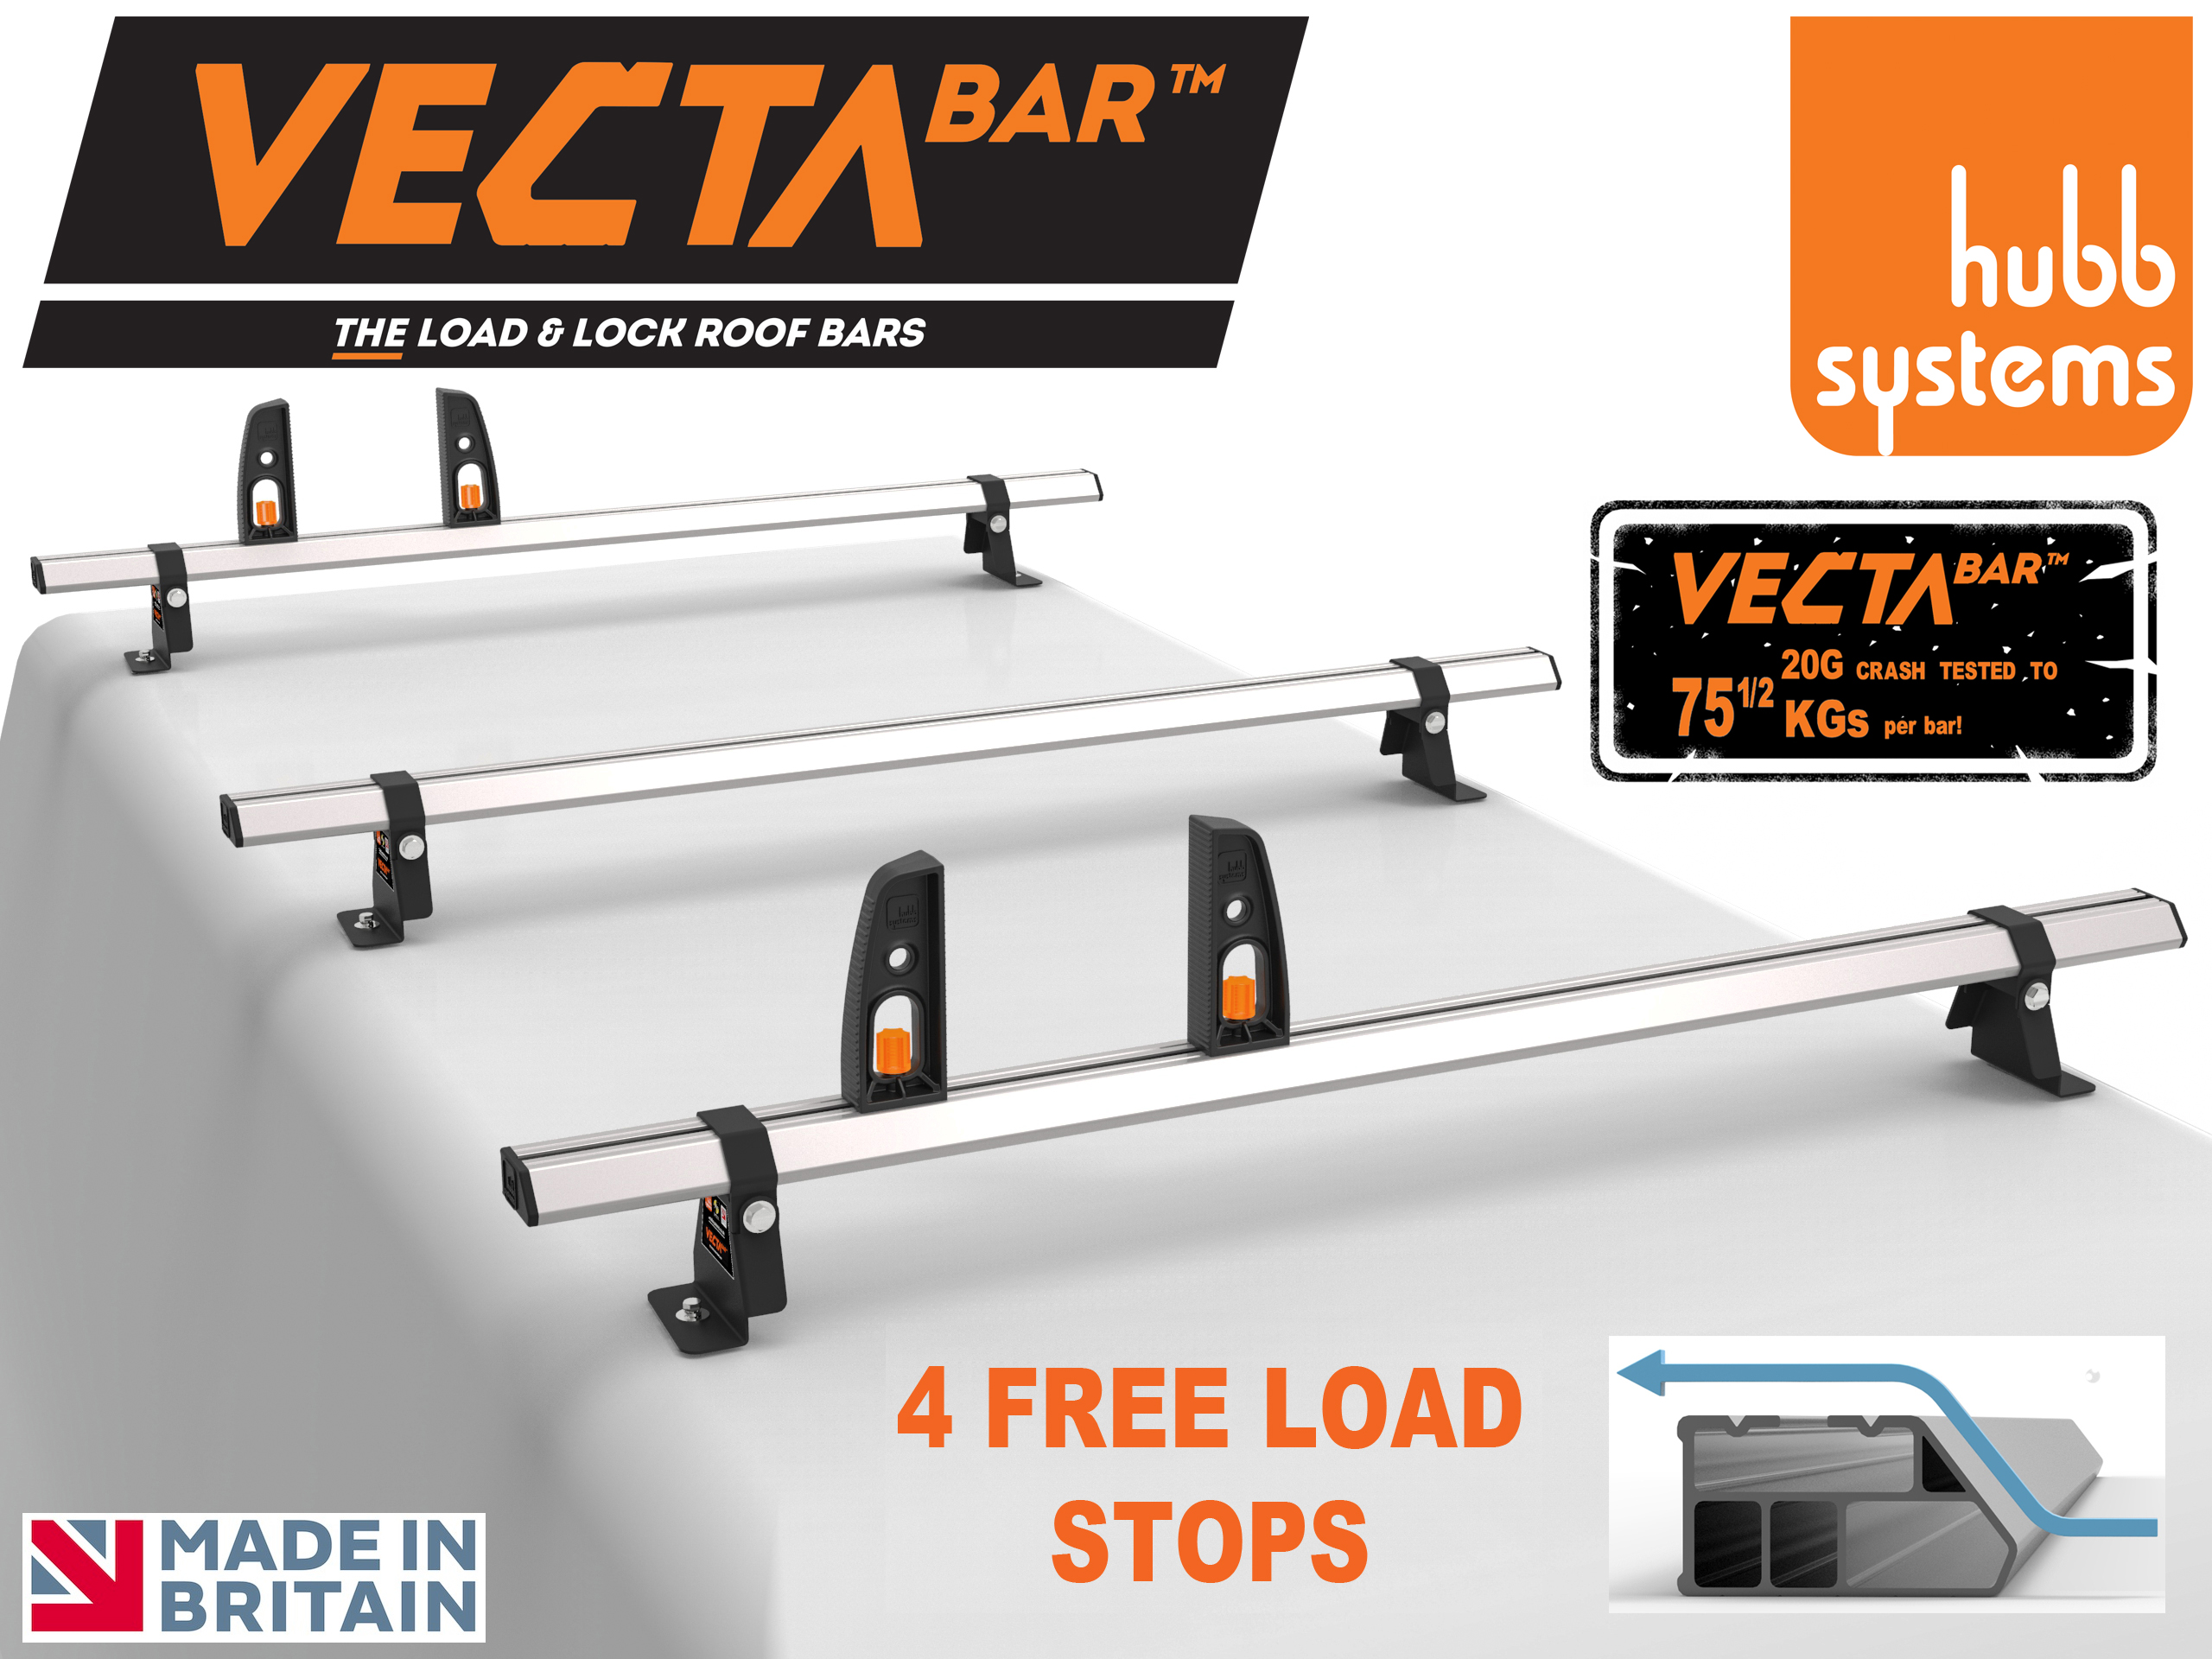 VECTA BAR - PROBABLY UK'S STRONGEST ROOF BAR - HEAVY DUTY